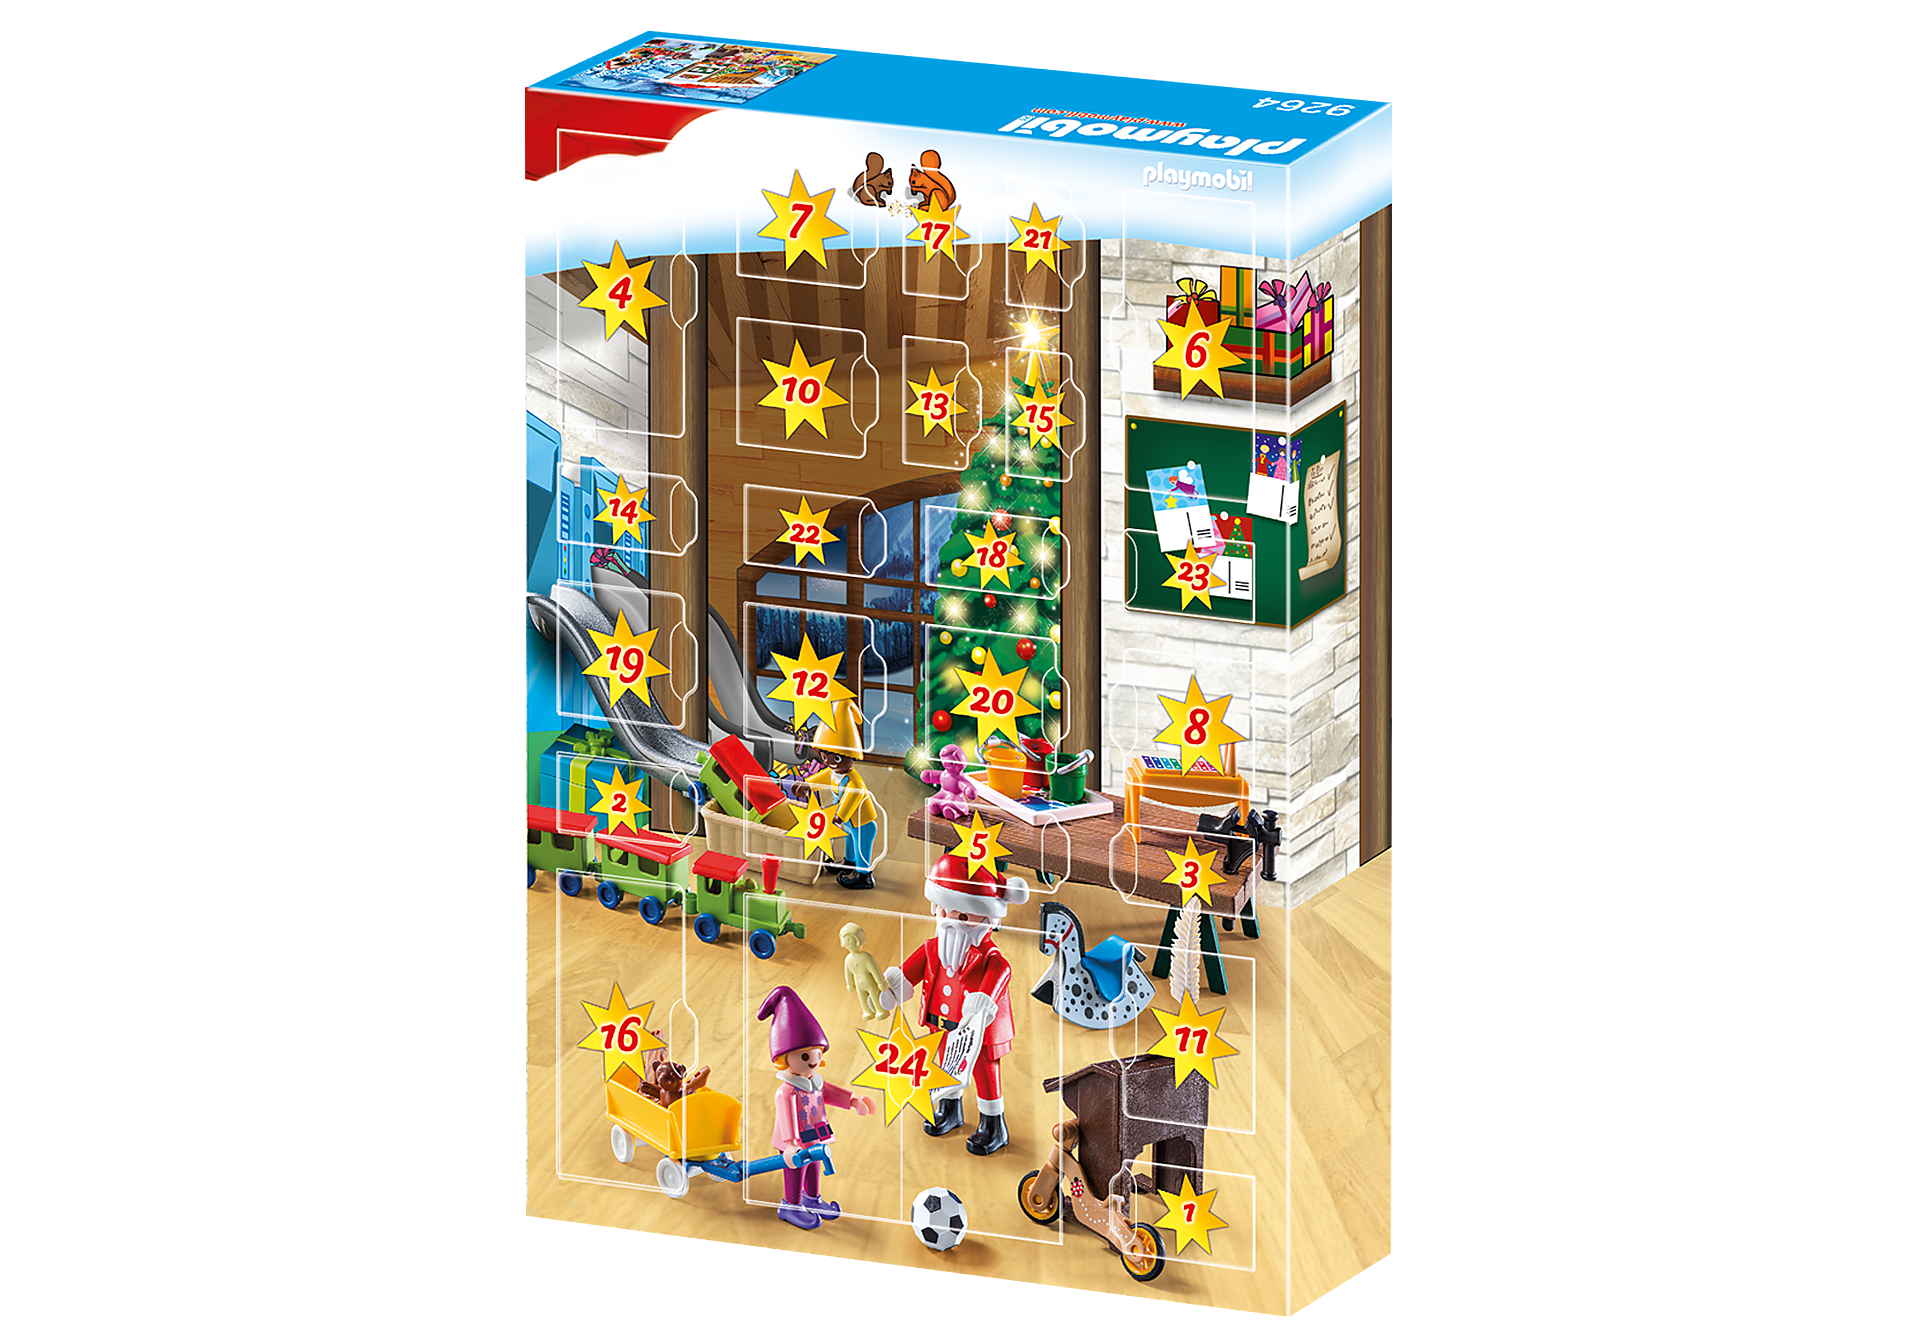 http://media.playmobil.com/i/playmobil/9264_product_extra2/Calendário do Advento 'Oficina de Natal'